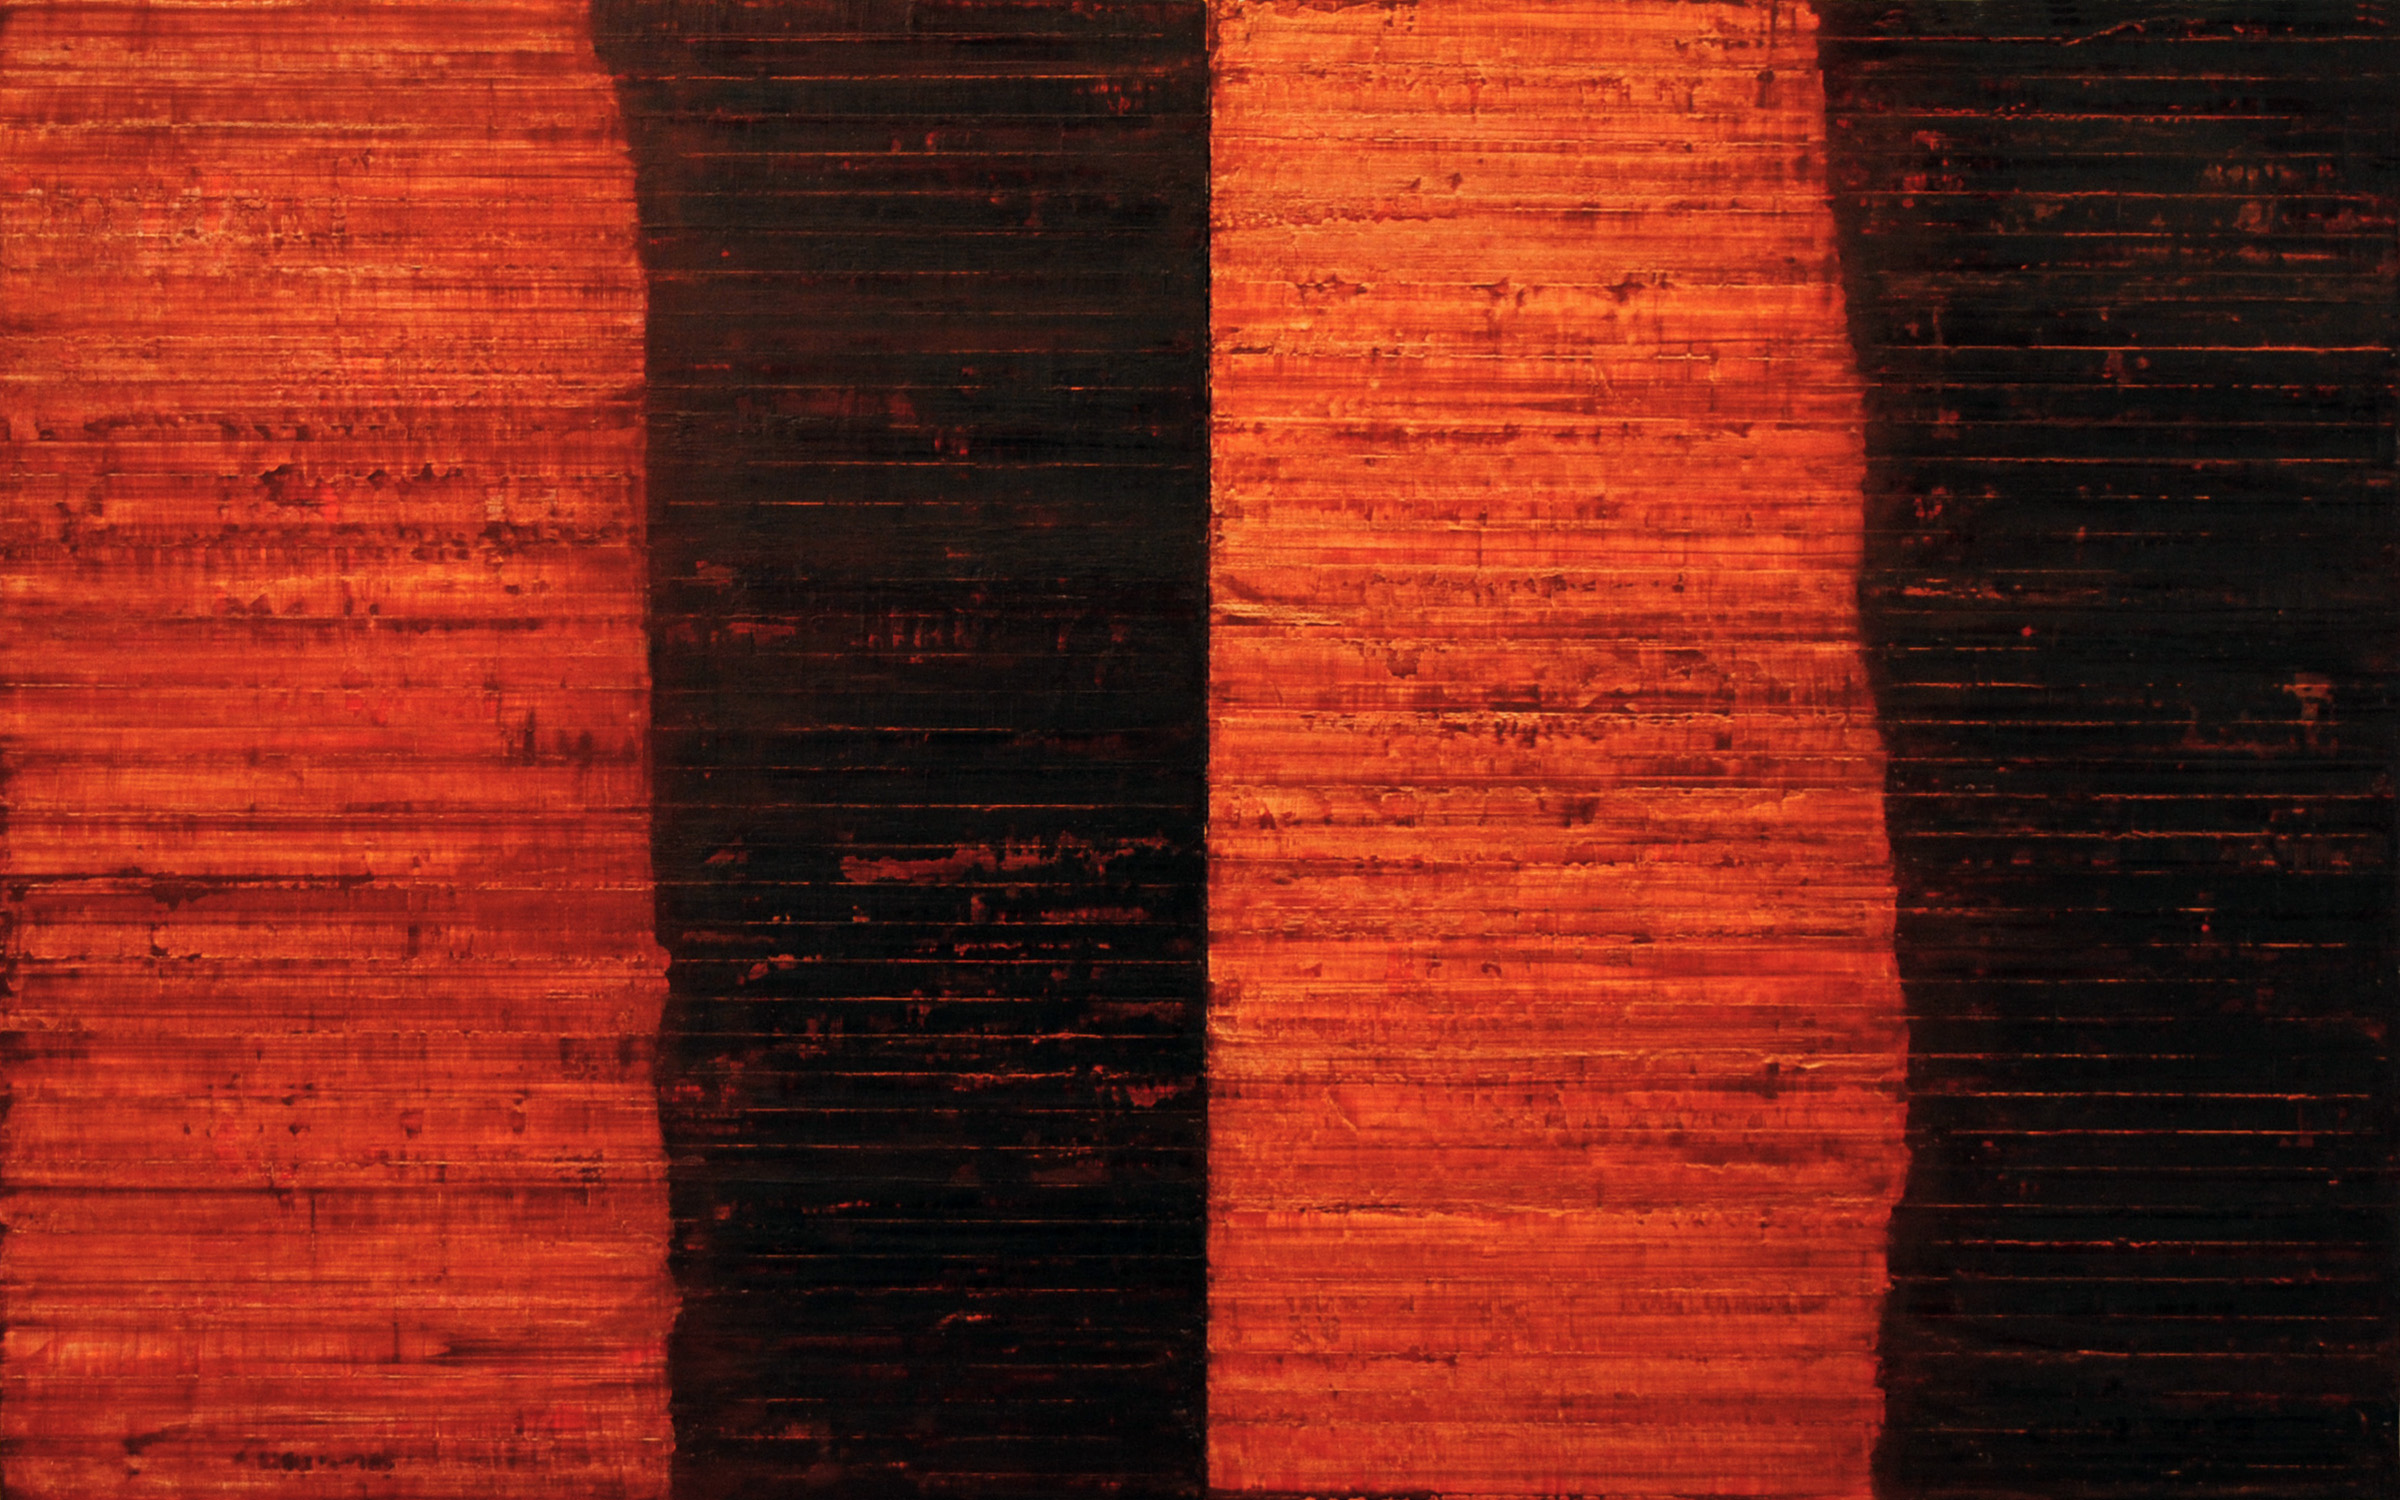 Linea Terminale: 5.10, 2010, Oil on linen over panels, 20 x 36 inches.